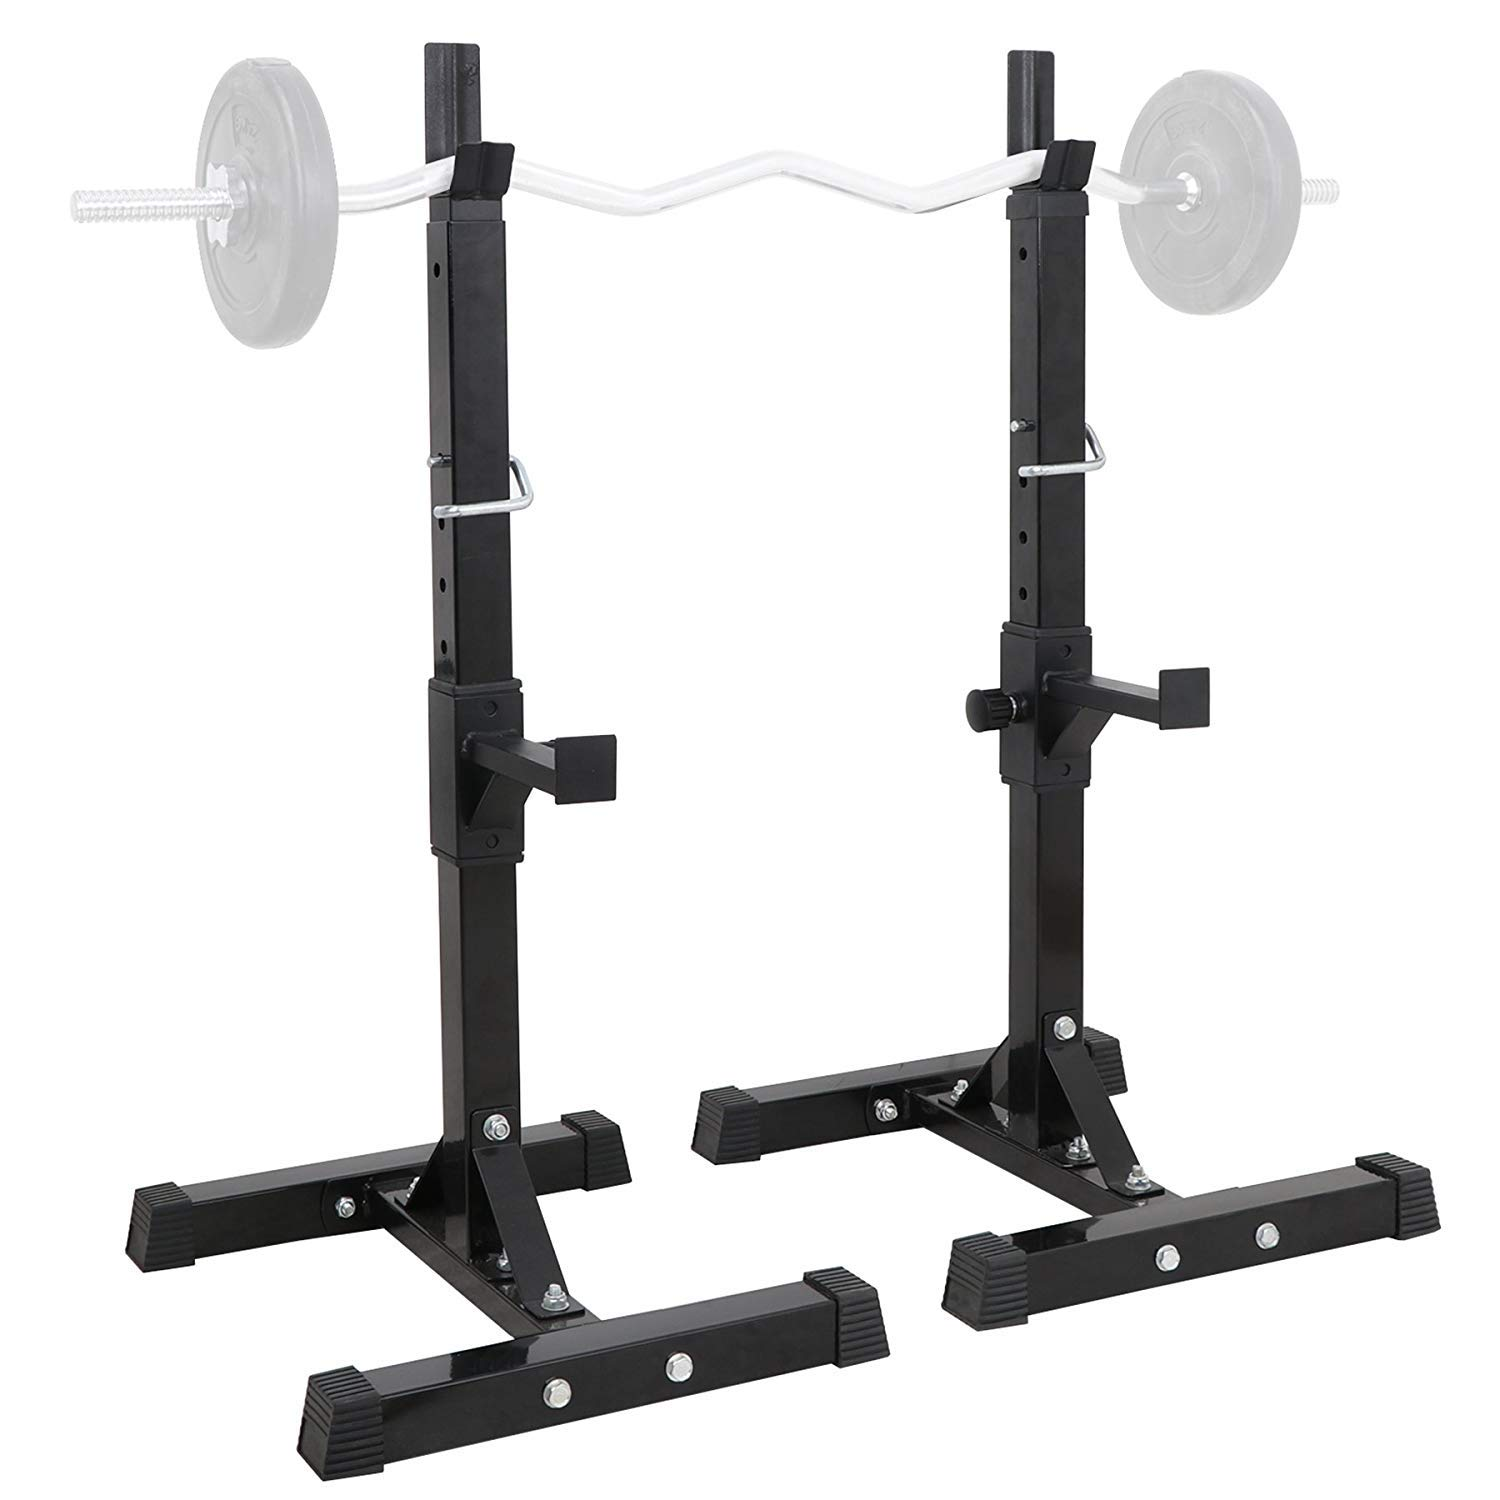 Pair of Solid Steel Adjustable Multi-Function Barbell Rack Weight Lifting Bench Press for Home Gym Weightlifting Machine GOTOTOP Barbell Rack